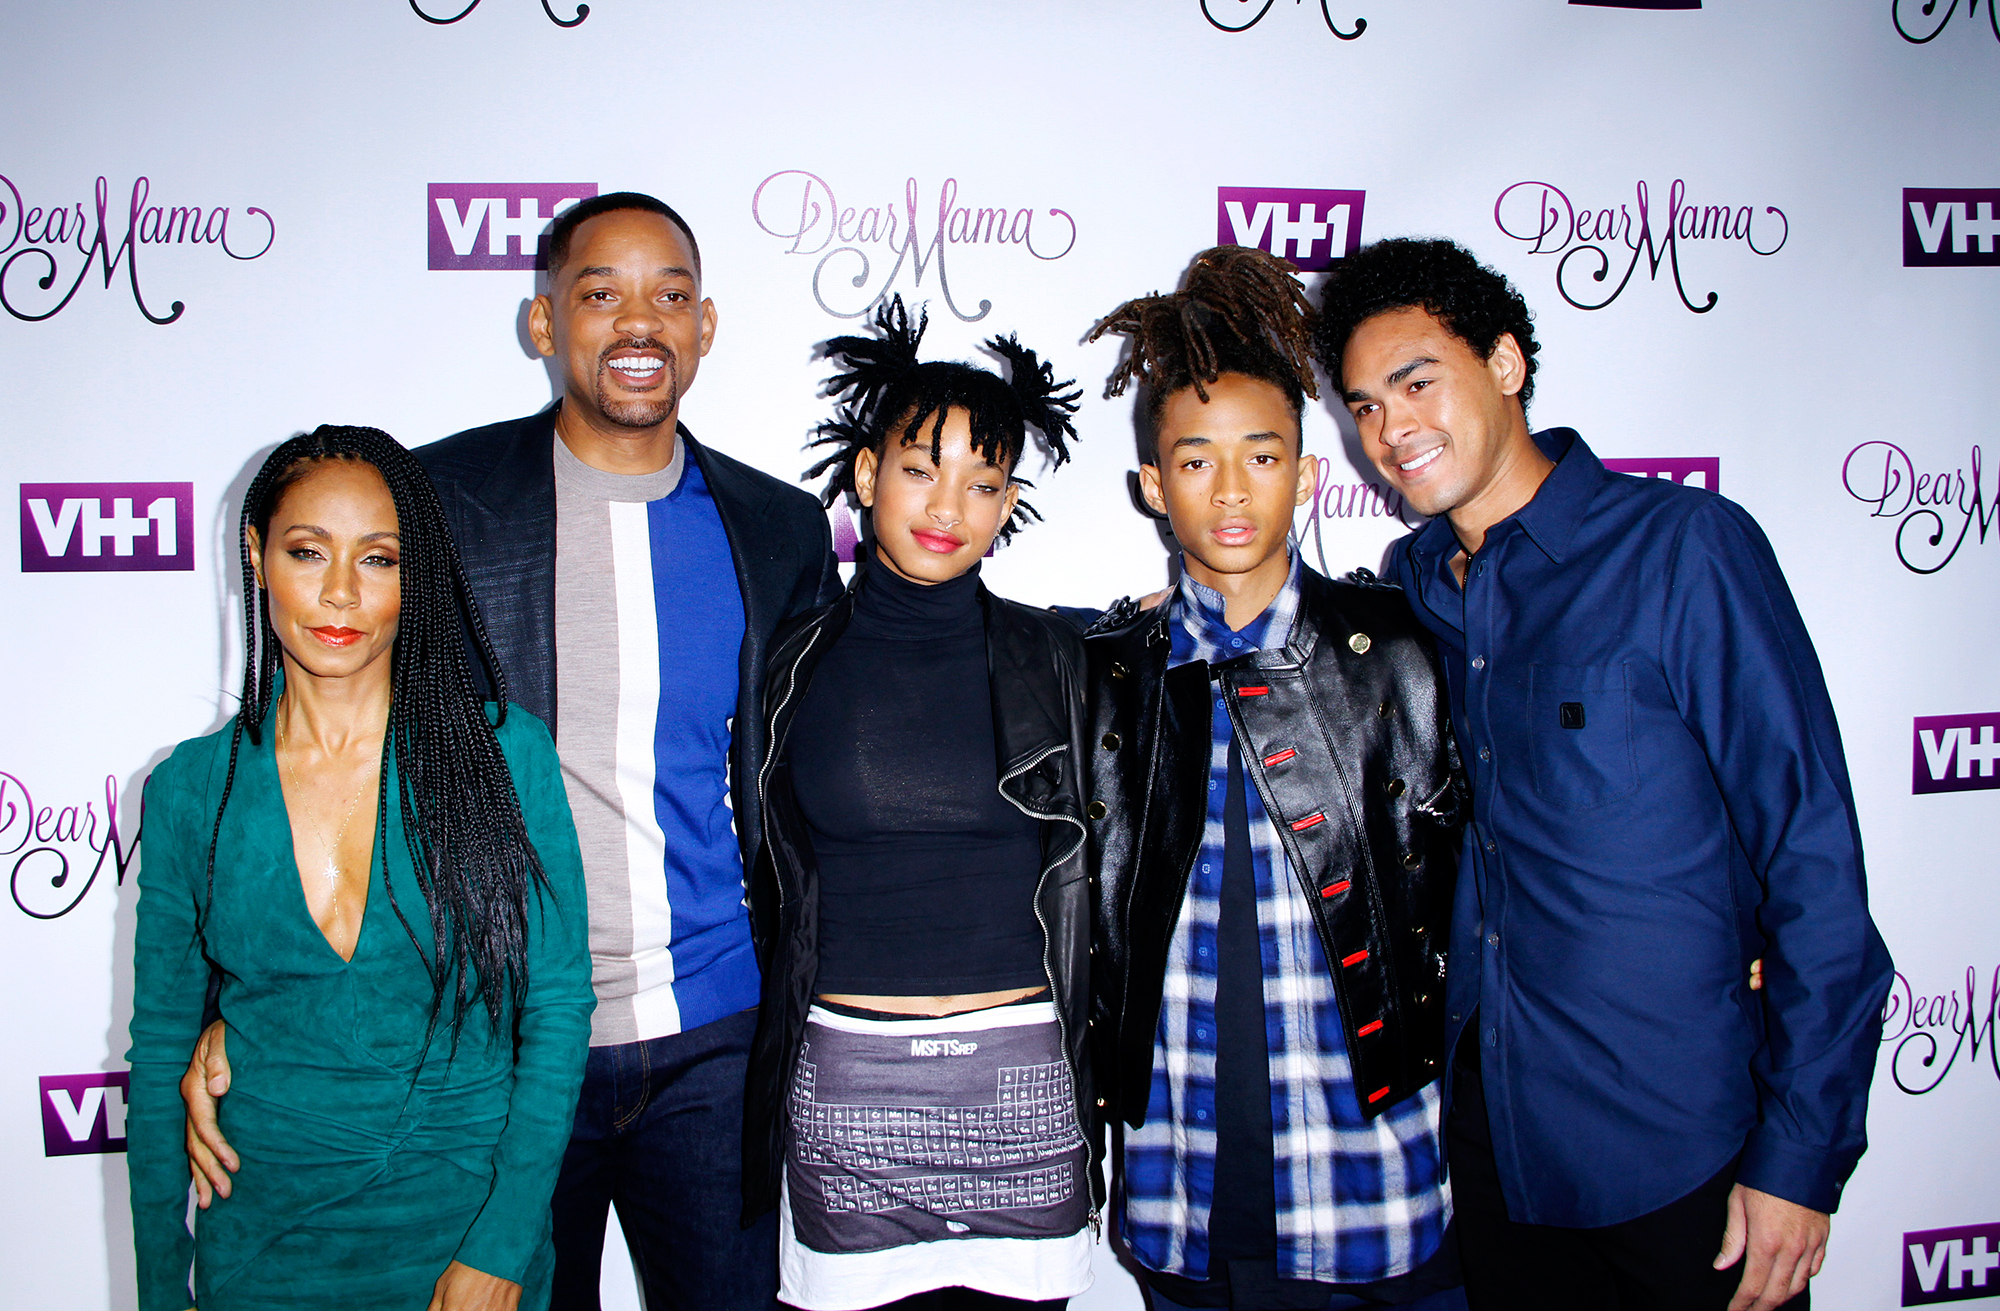 Will Smith and family at the VH1 Awards